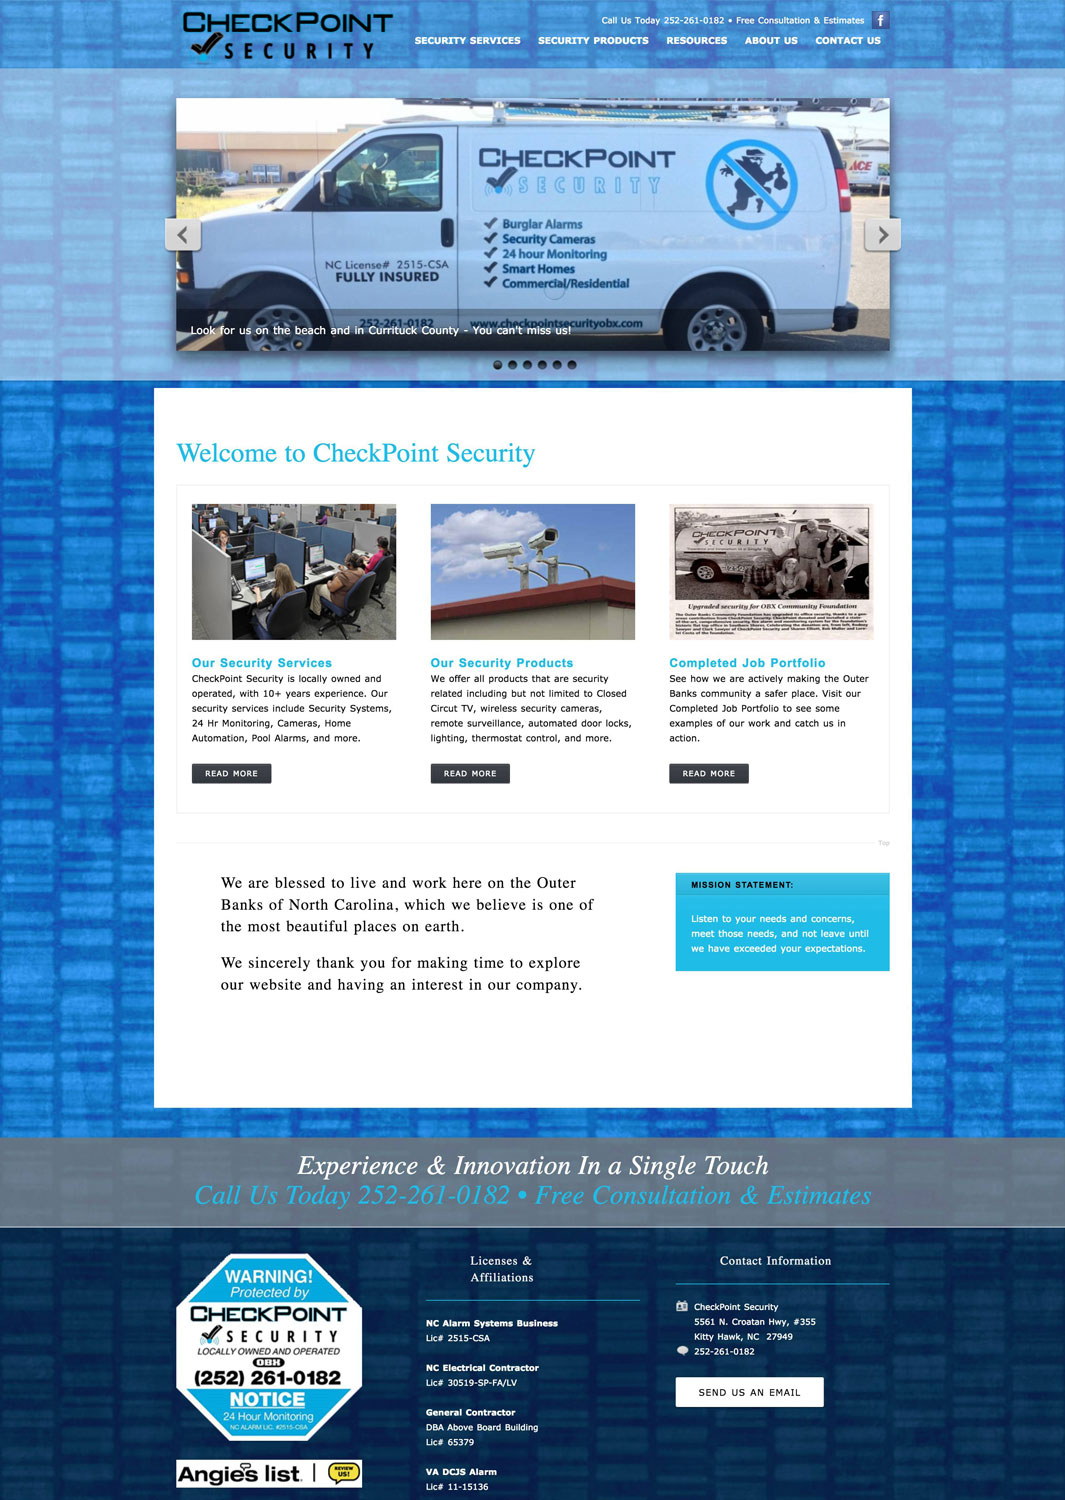 CheckPoint Security Website